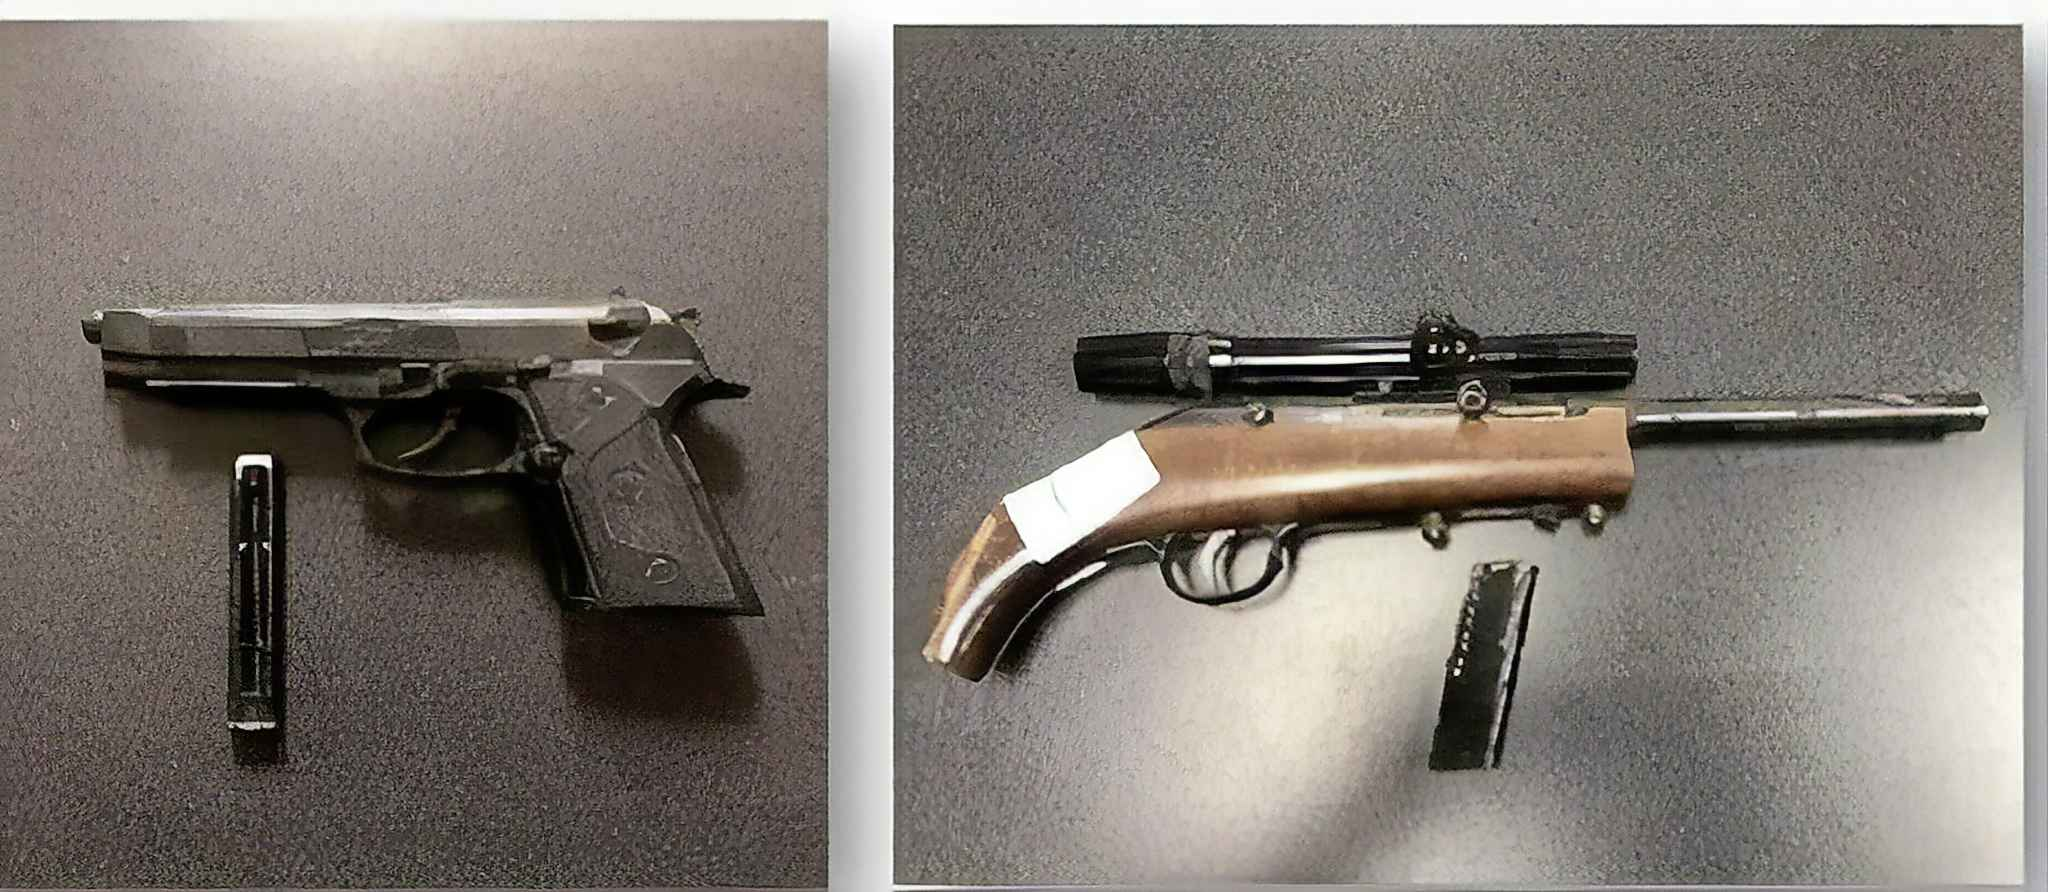 A patrol stop in Sandy Bay First Nation in May resulted in the seizure of a sawed-off shotgun and realistic pellet gun. (Supplied photo)